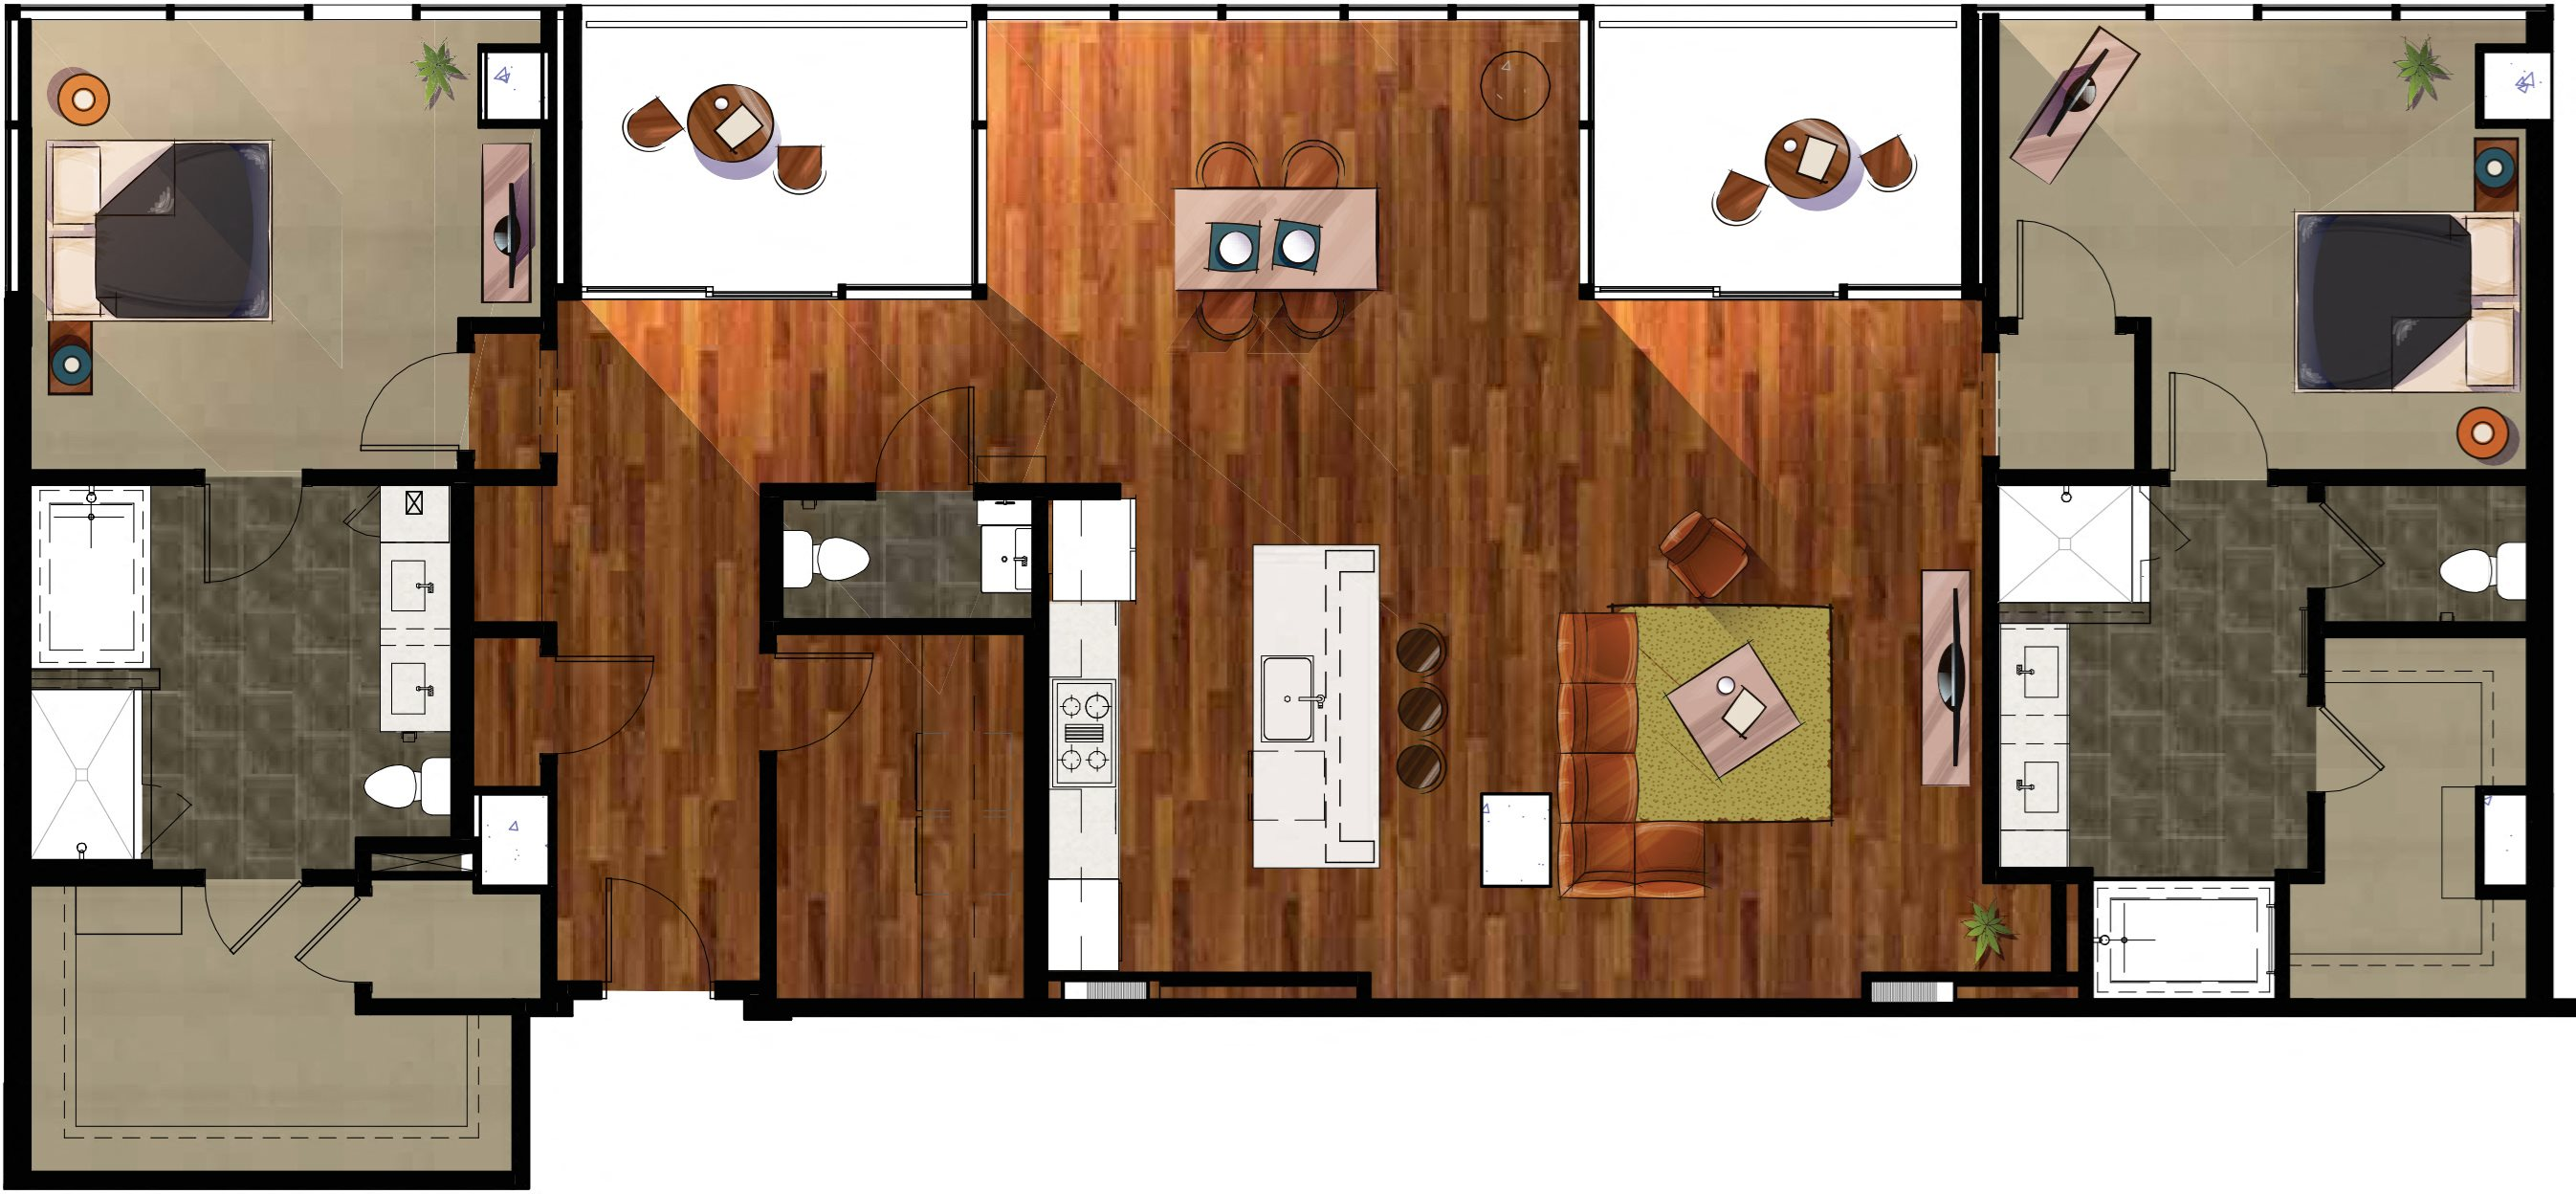 P3 - Penthouse Apartment